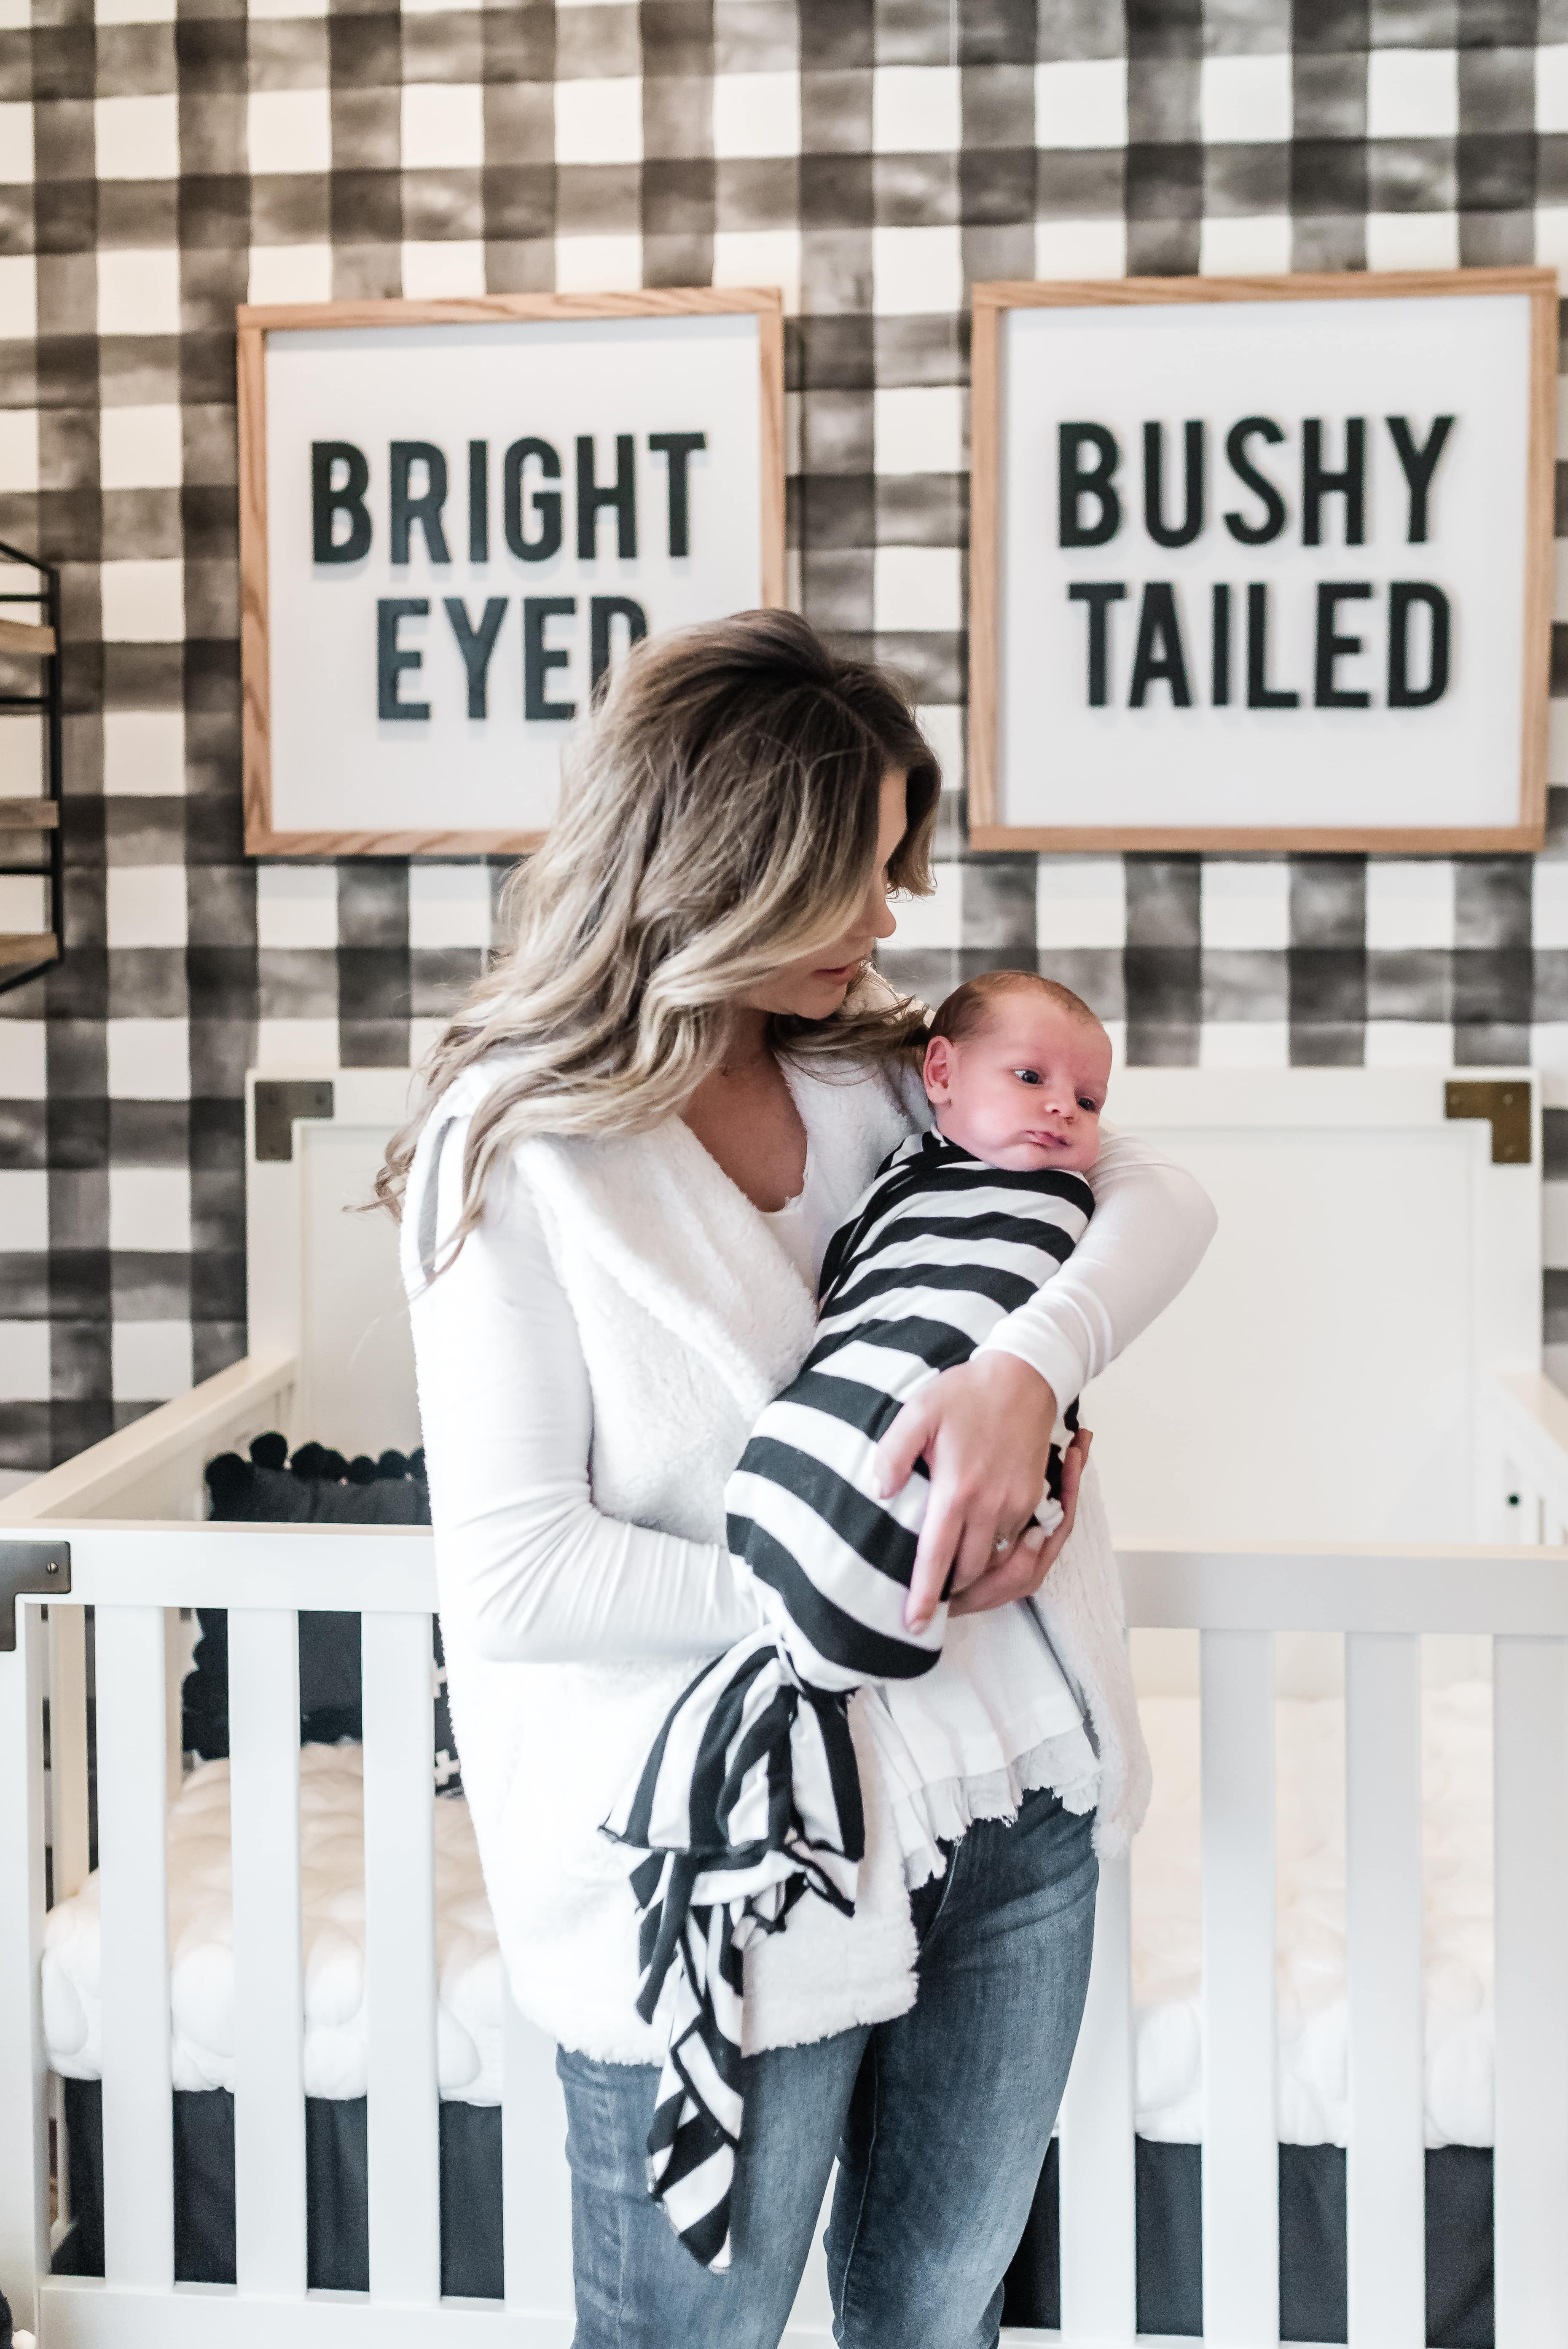 Life & Style Blogger Ashlee Nichold shares afforable nursery finds from Walmart. She makes her top 10 nursery furniture picks from the Walmart baby sale.